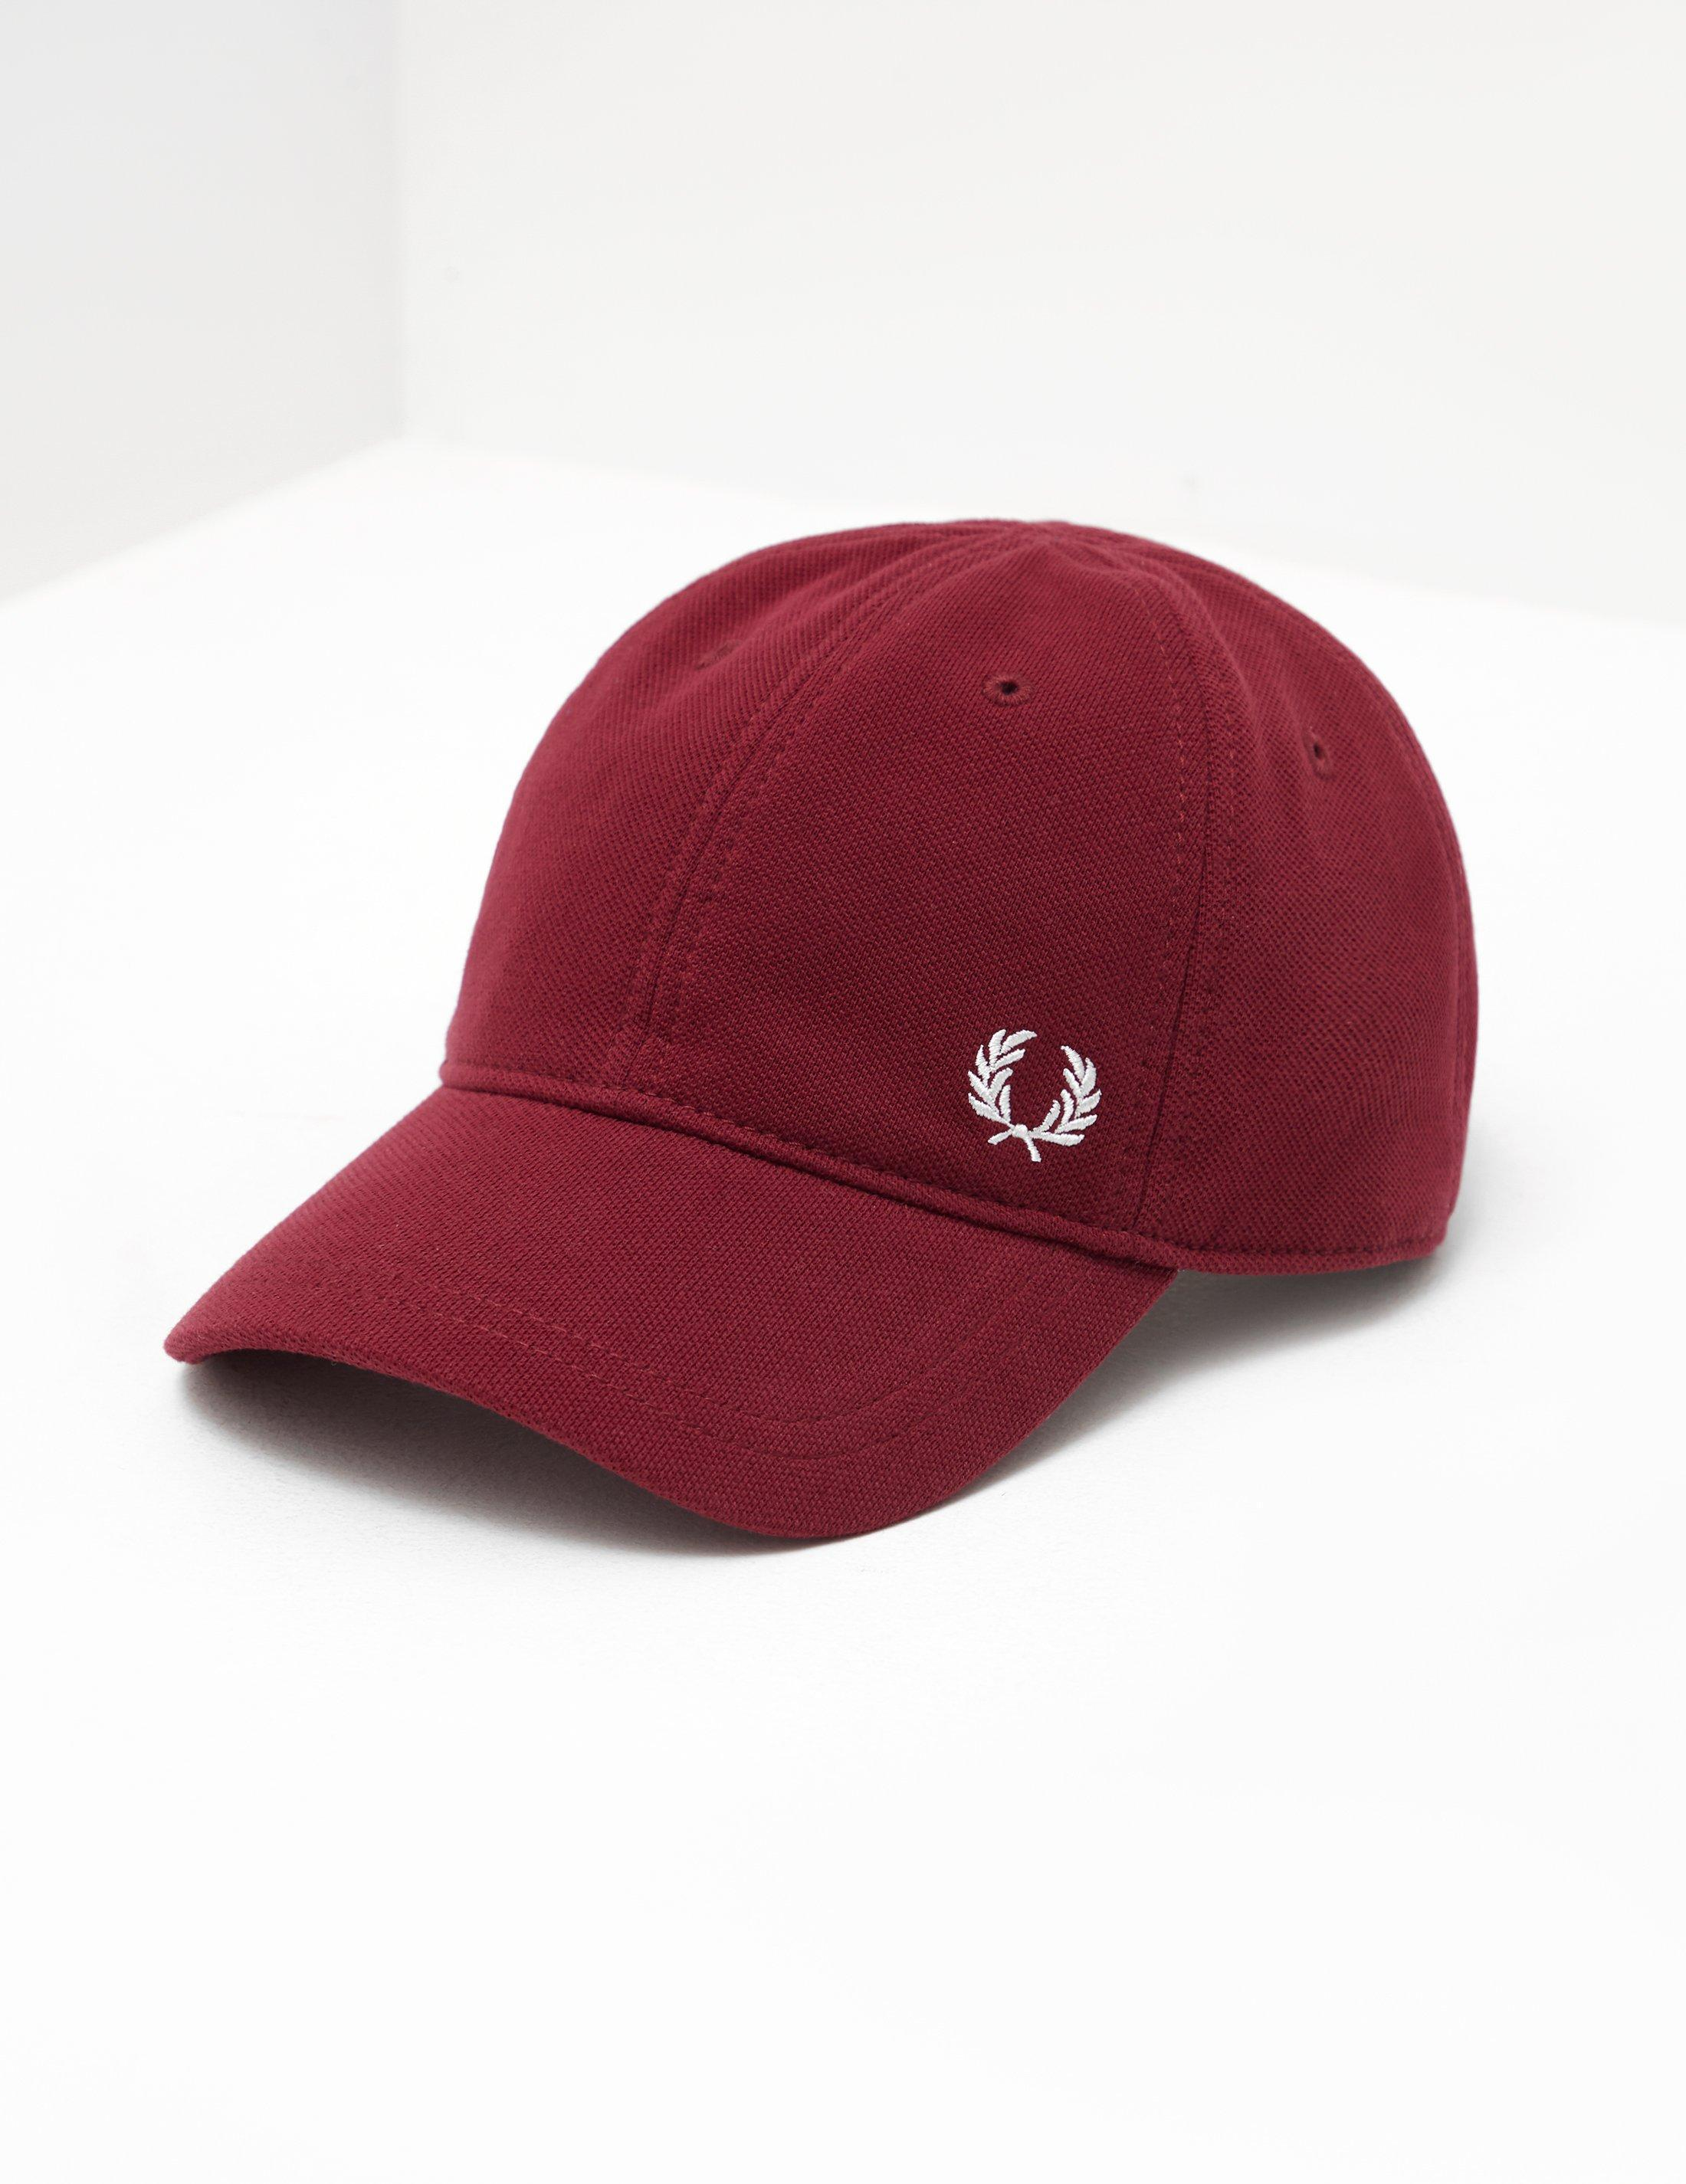 058a27116 Fred Perry Crest Cap Burgundy/burgundy in Red for Men - Lyst